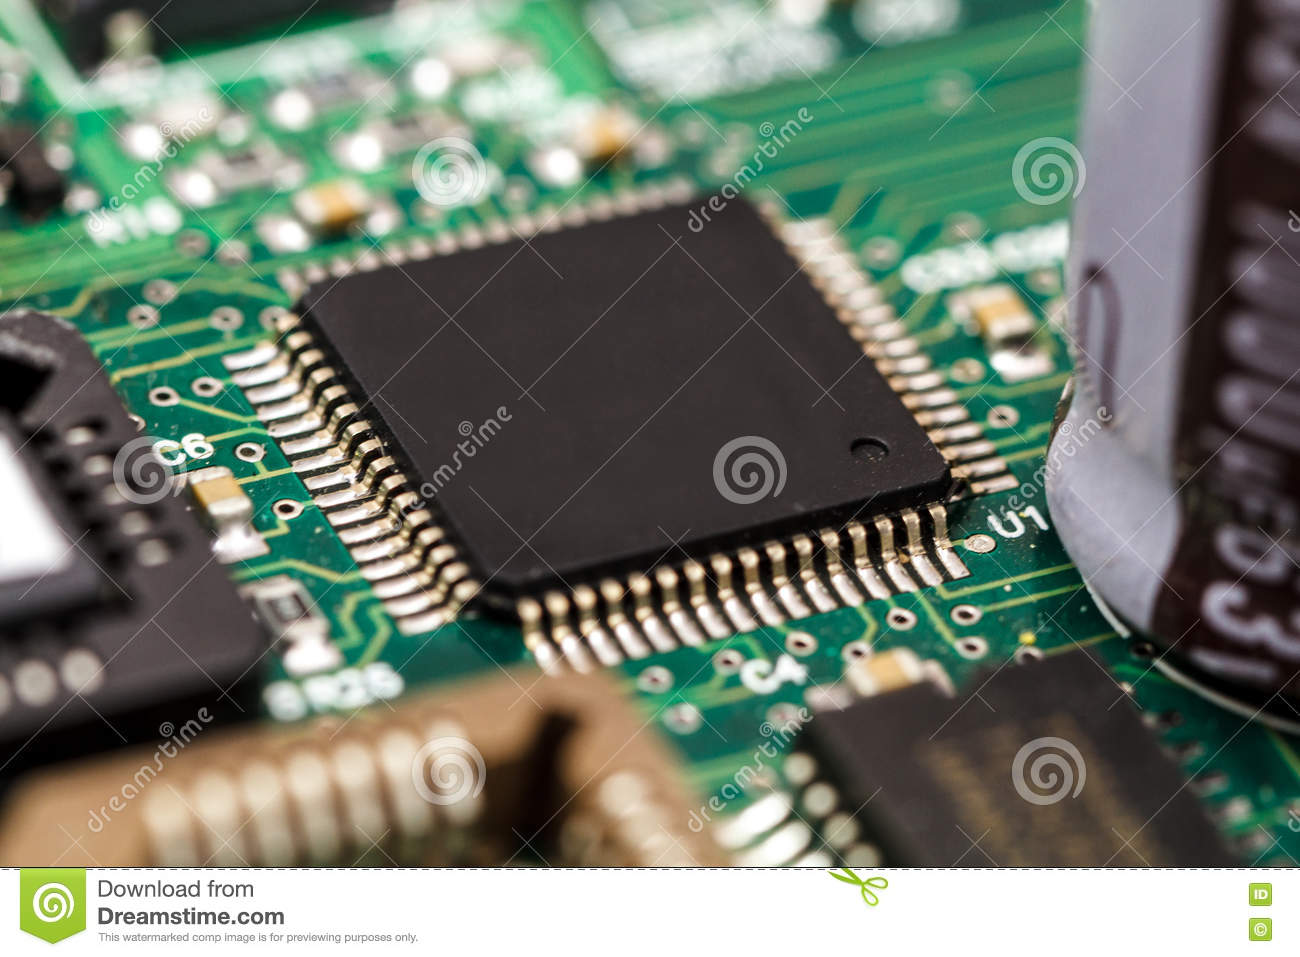 Application Specific Integrated Circuit Stock Image Of Resistors And Capacitors In A Capacitor Ics Chip Mounted On Printed Wiring Board